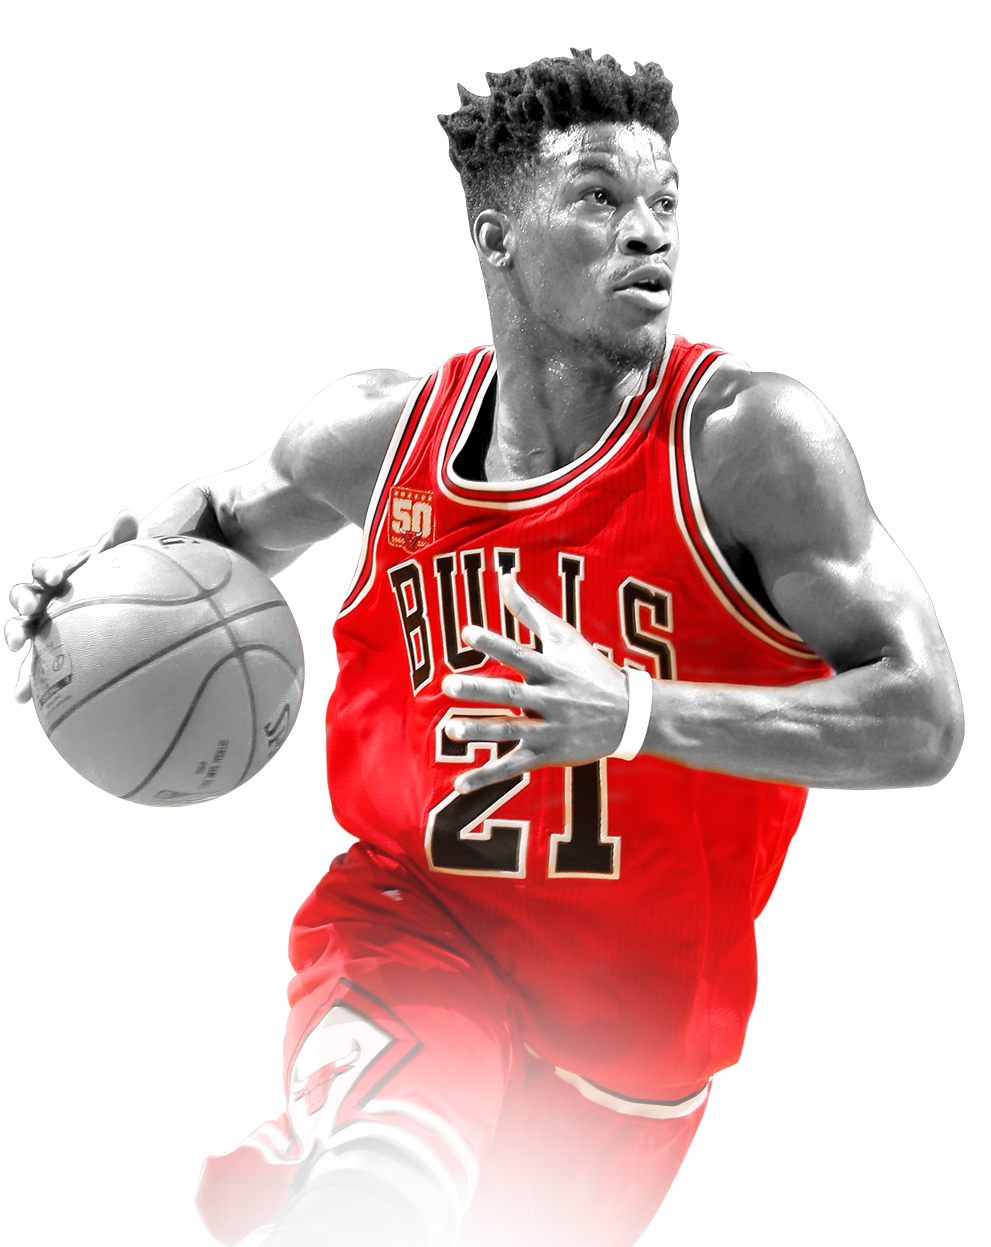 Chicago bulls png. Playoff tickets